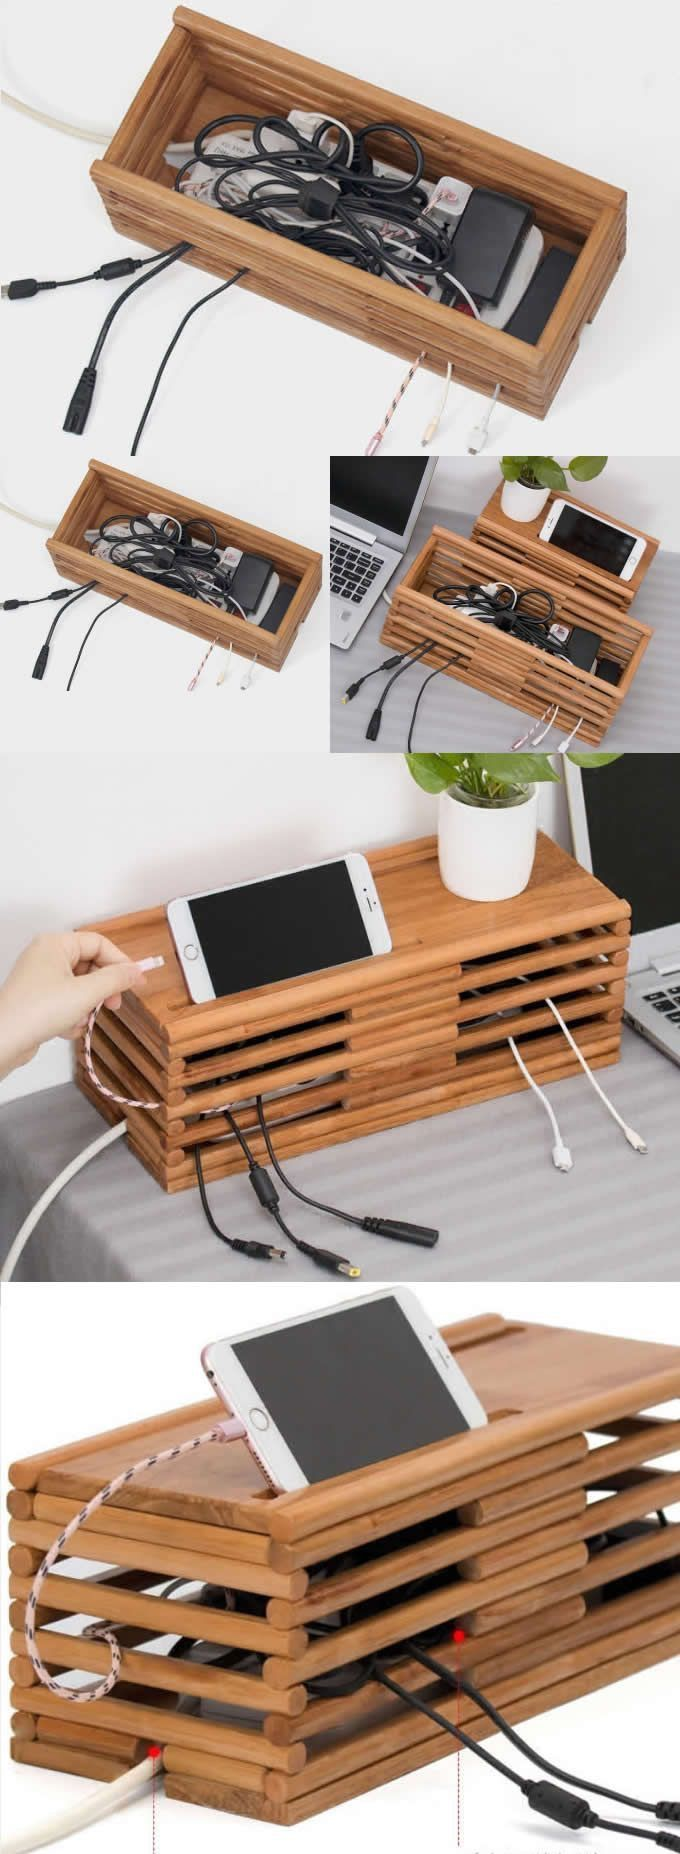 Smart phone caddy with lots of adaptor storage spa…